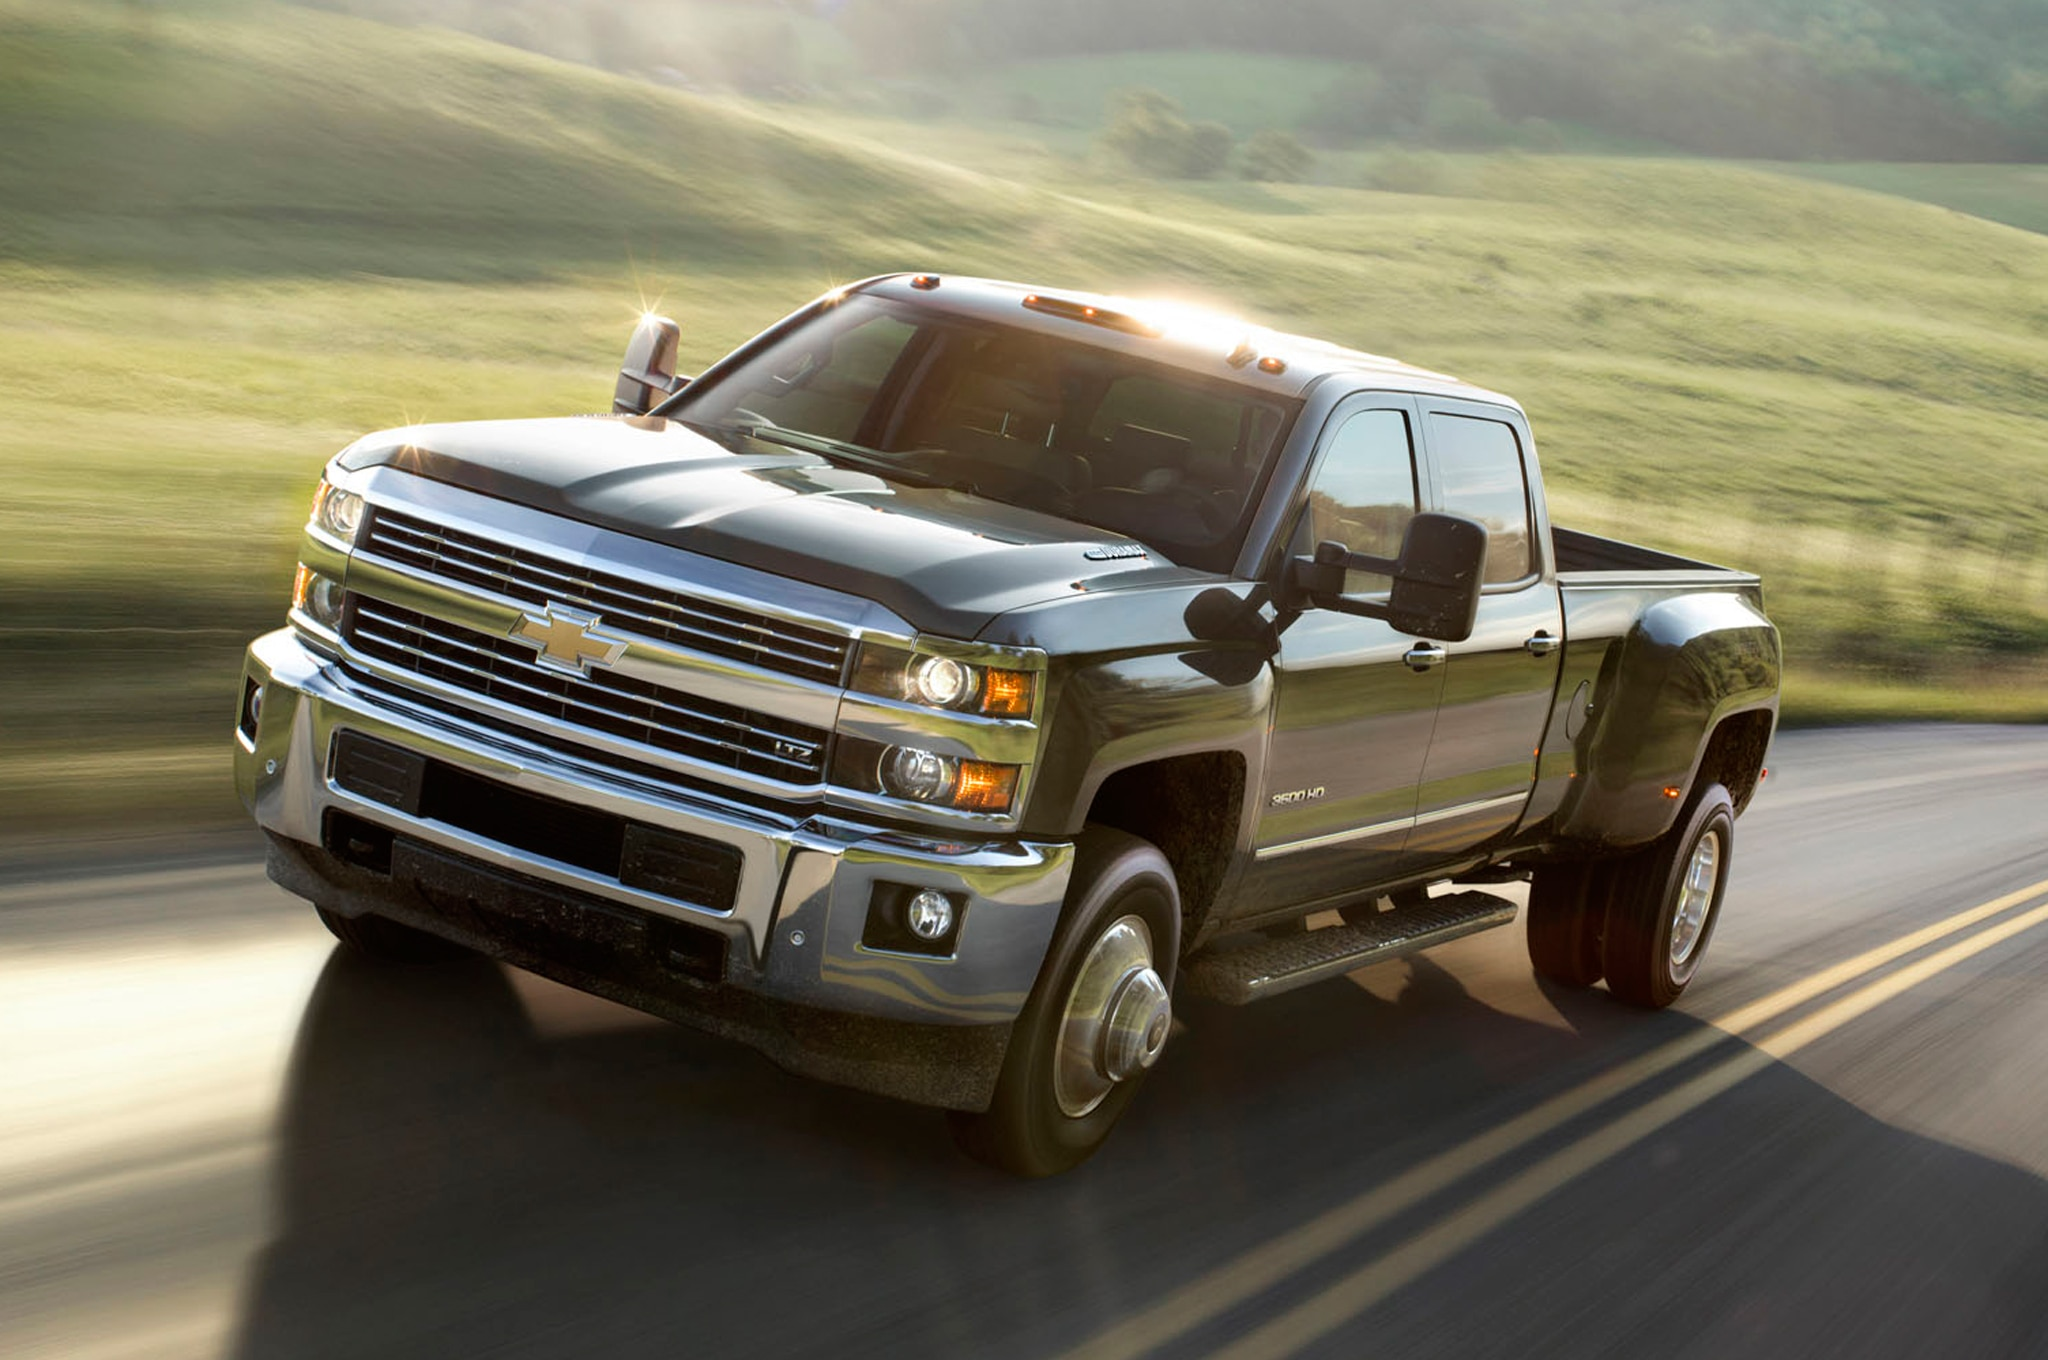 2015 Chevrolet Silverado 3500HD front three quarters in motion